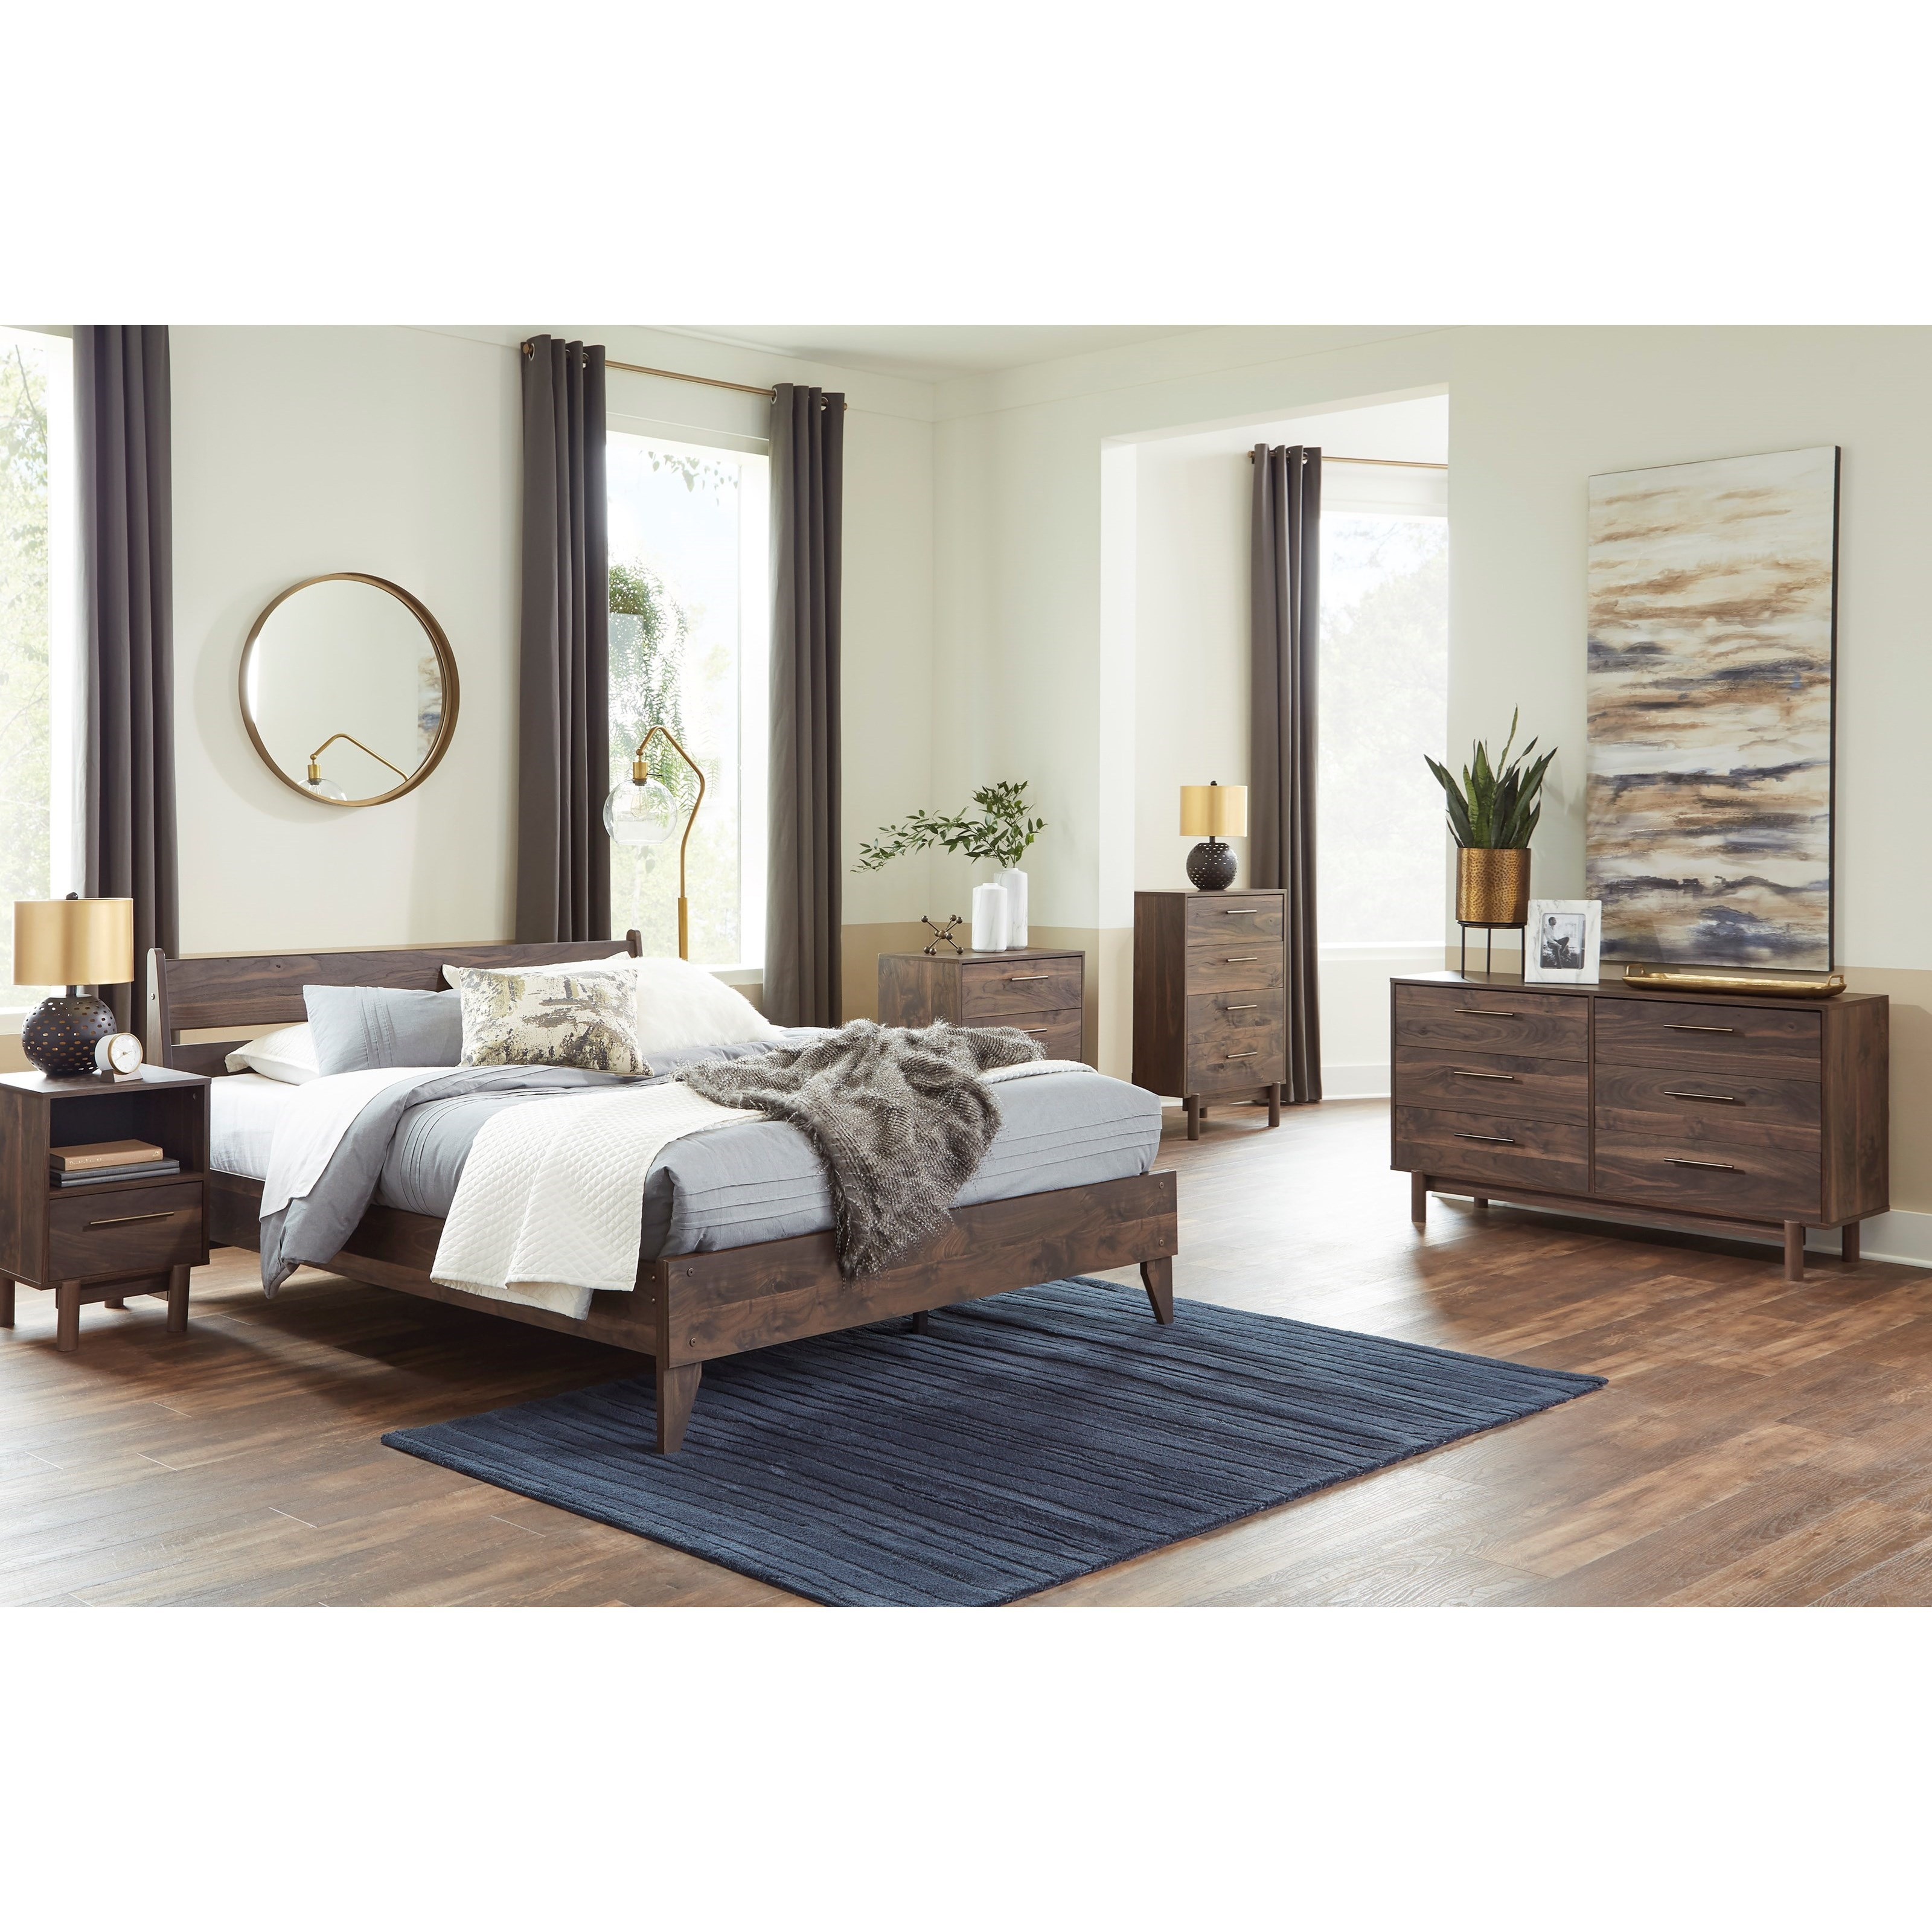 Calverson Queen Bedroom Group  by Signature Design by Ashley at Northeast Factory Direct